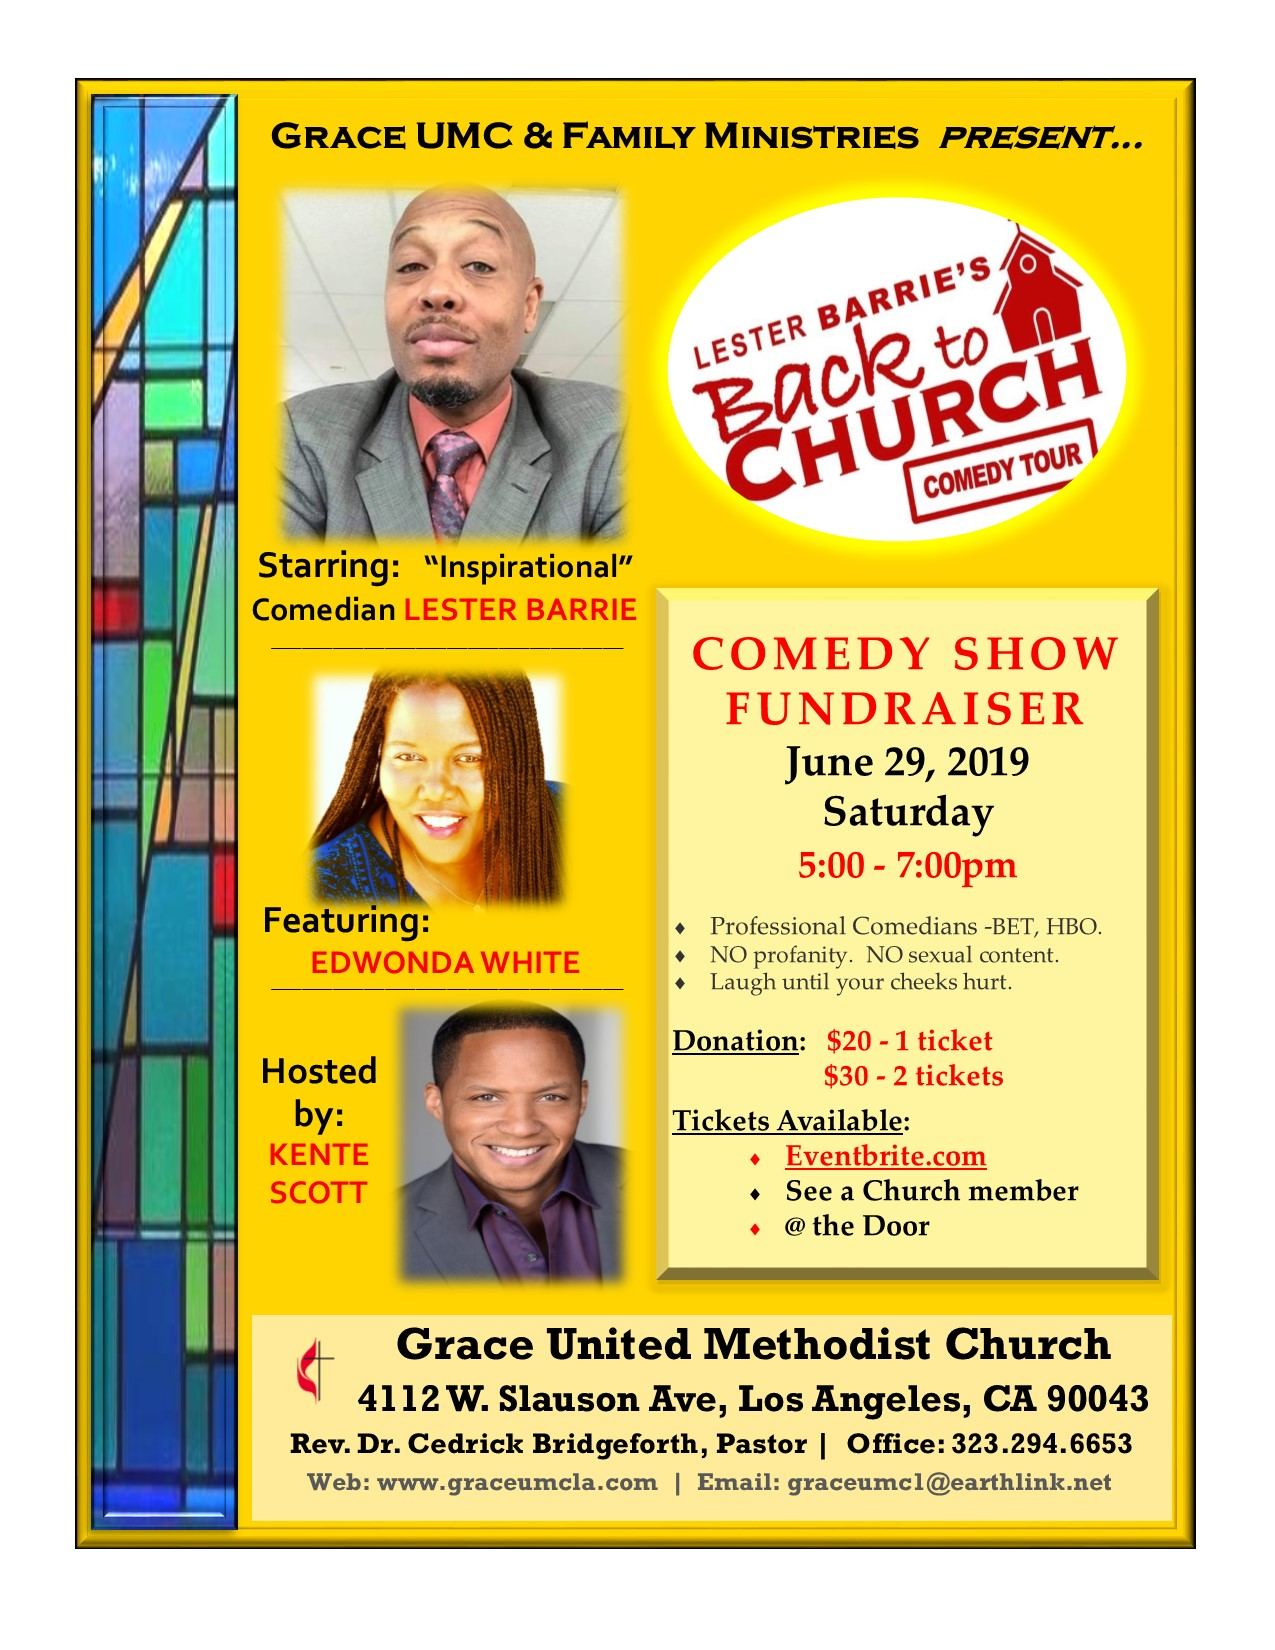 Lester Barrie Comedy Show at Grace UMC 06/29/19